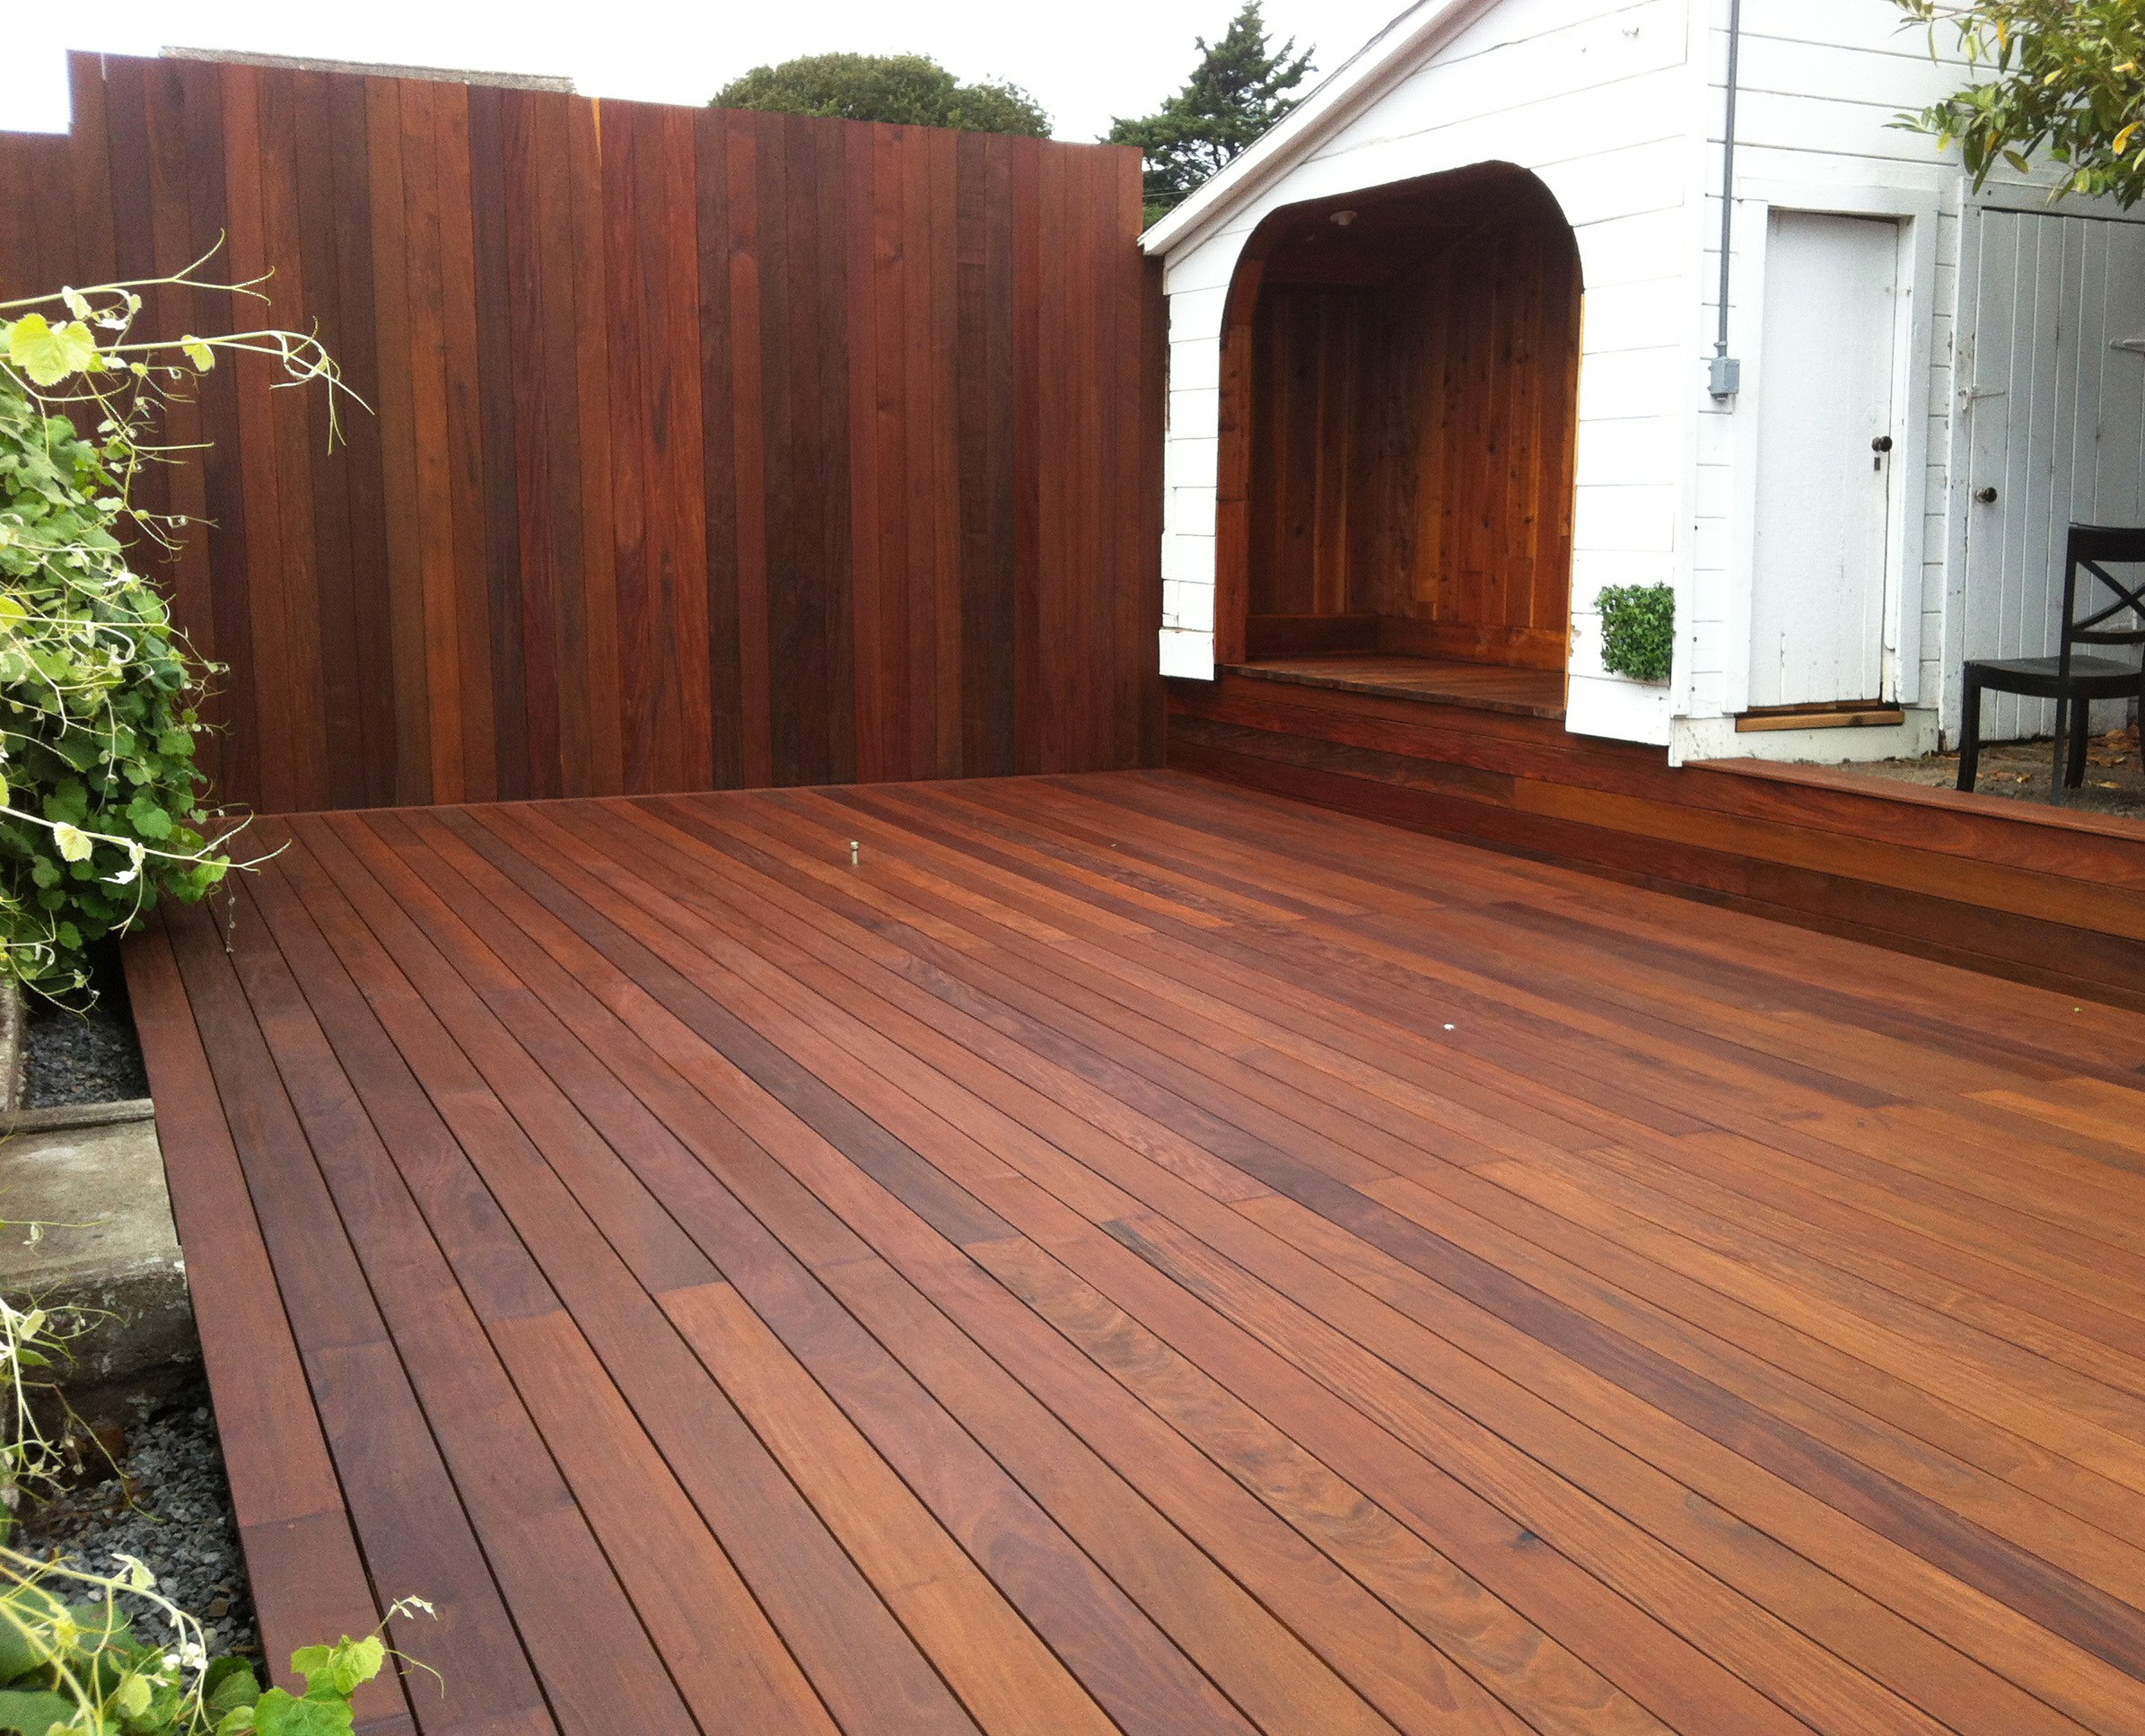 Deck building contractor sonoma marin patio covers for Best hardwood for decks